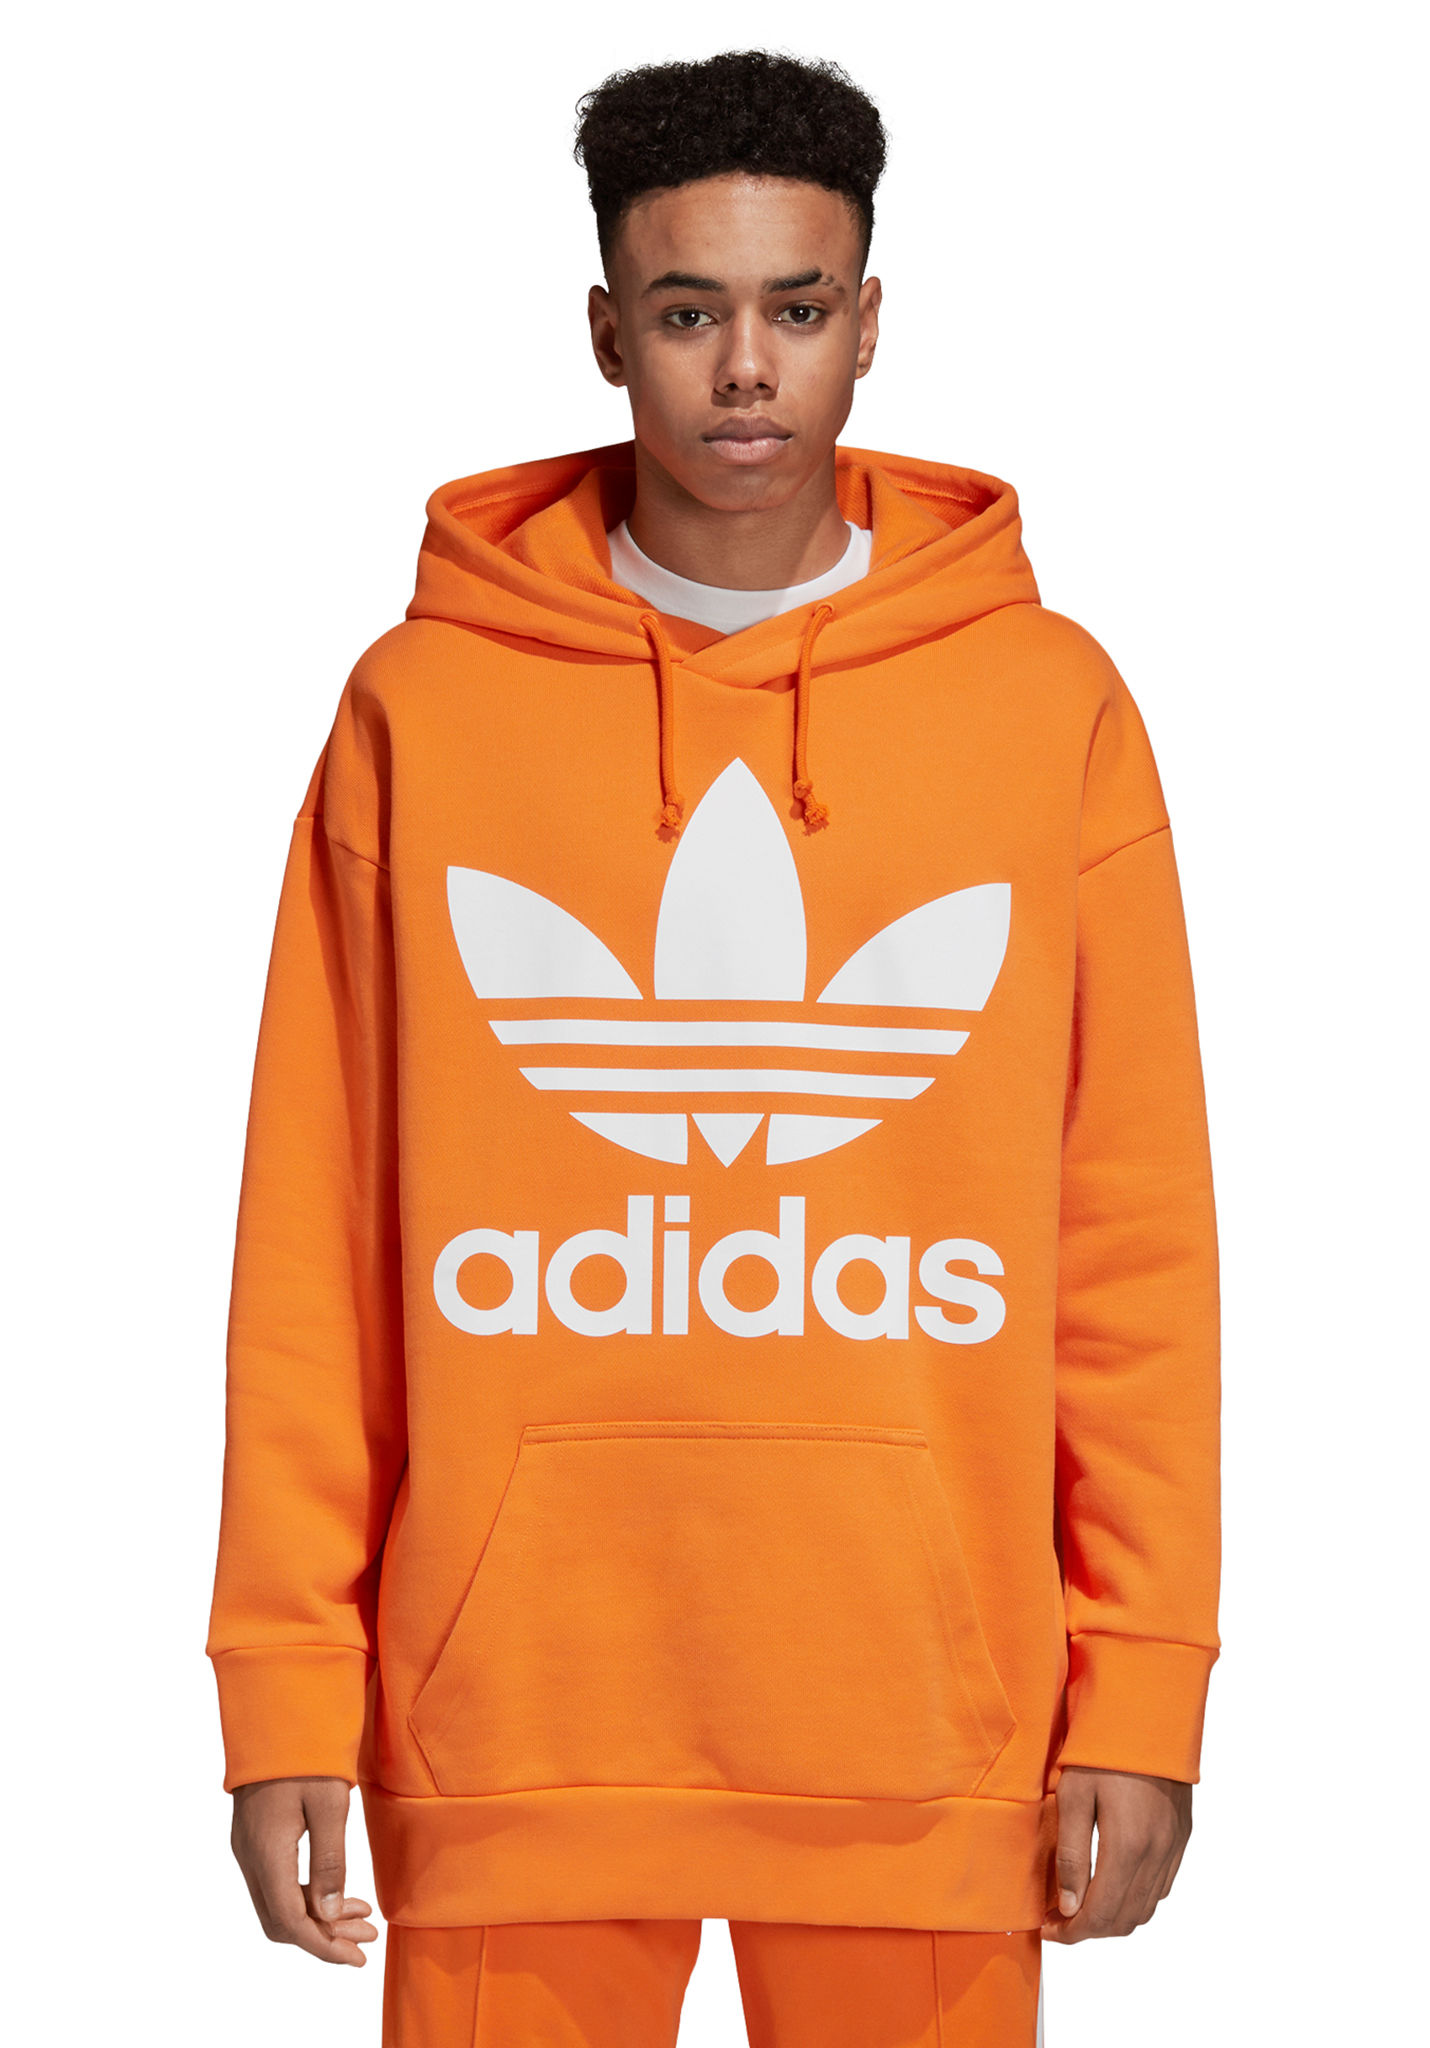 c6158705cfe9 ADIDAS ORIGINALS Trefoil Over - Hooded Sweatshirt for Men - Orange - Planet  Sports